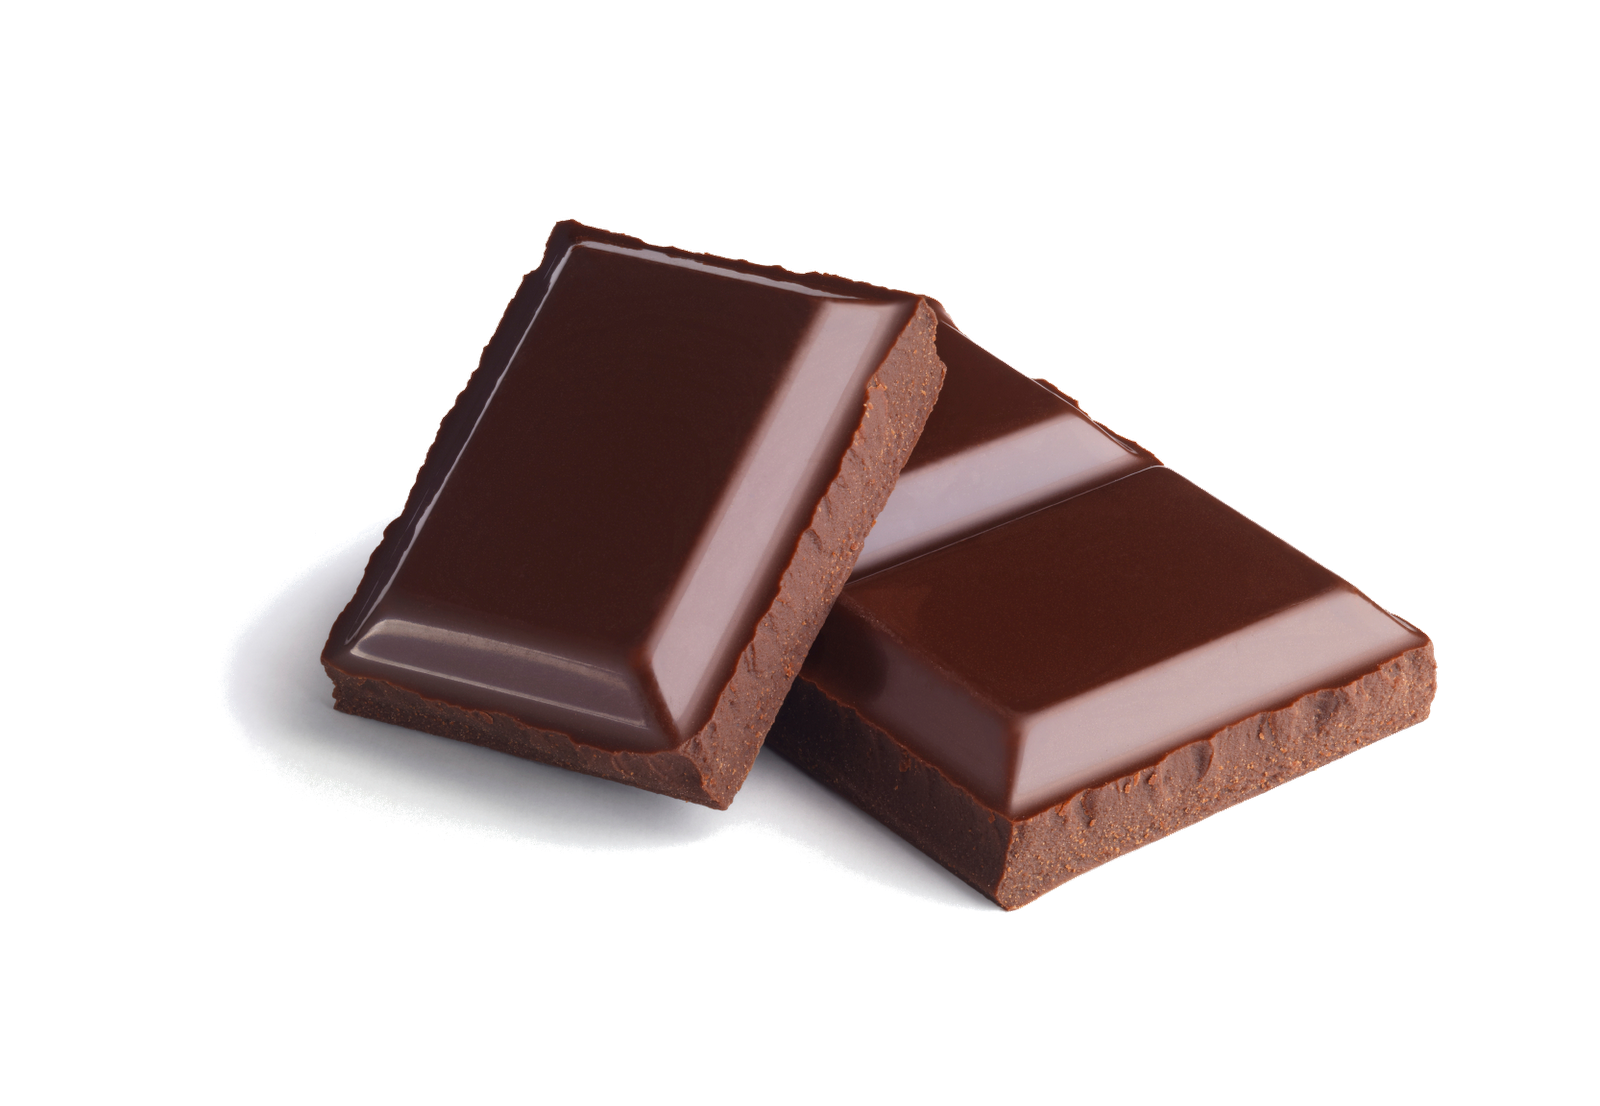 Chocolate PNG image - Chocolate PNG